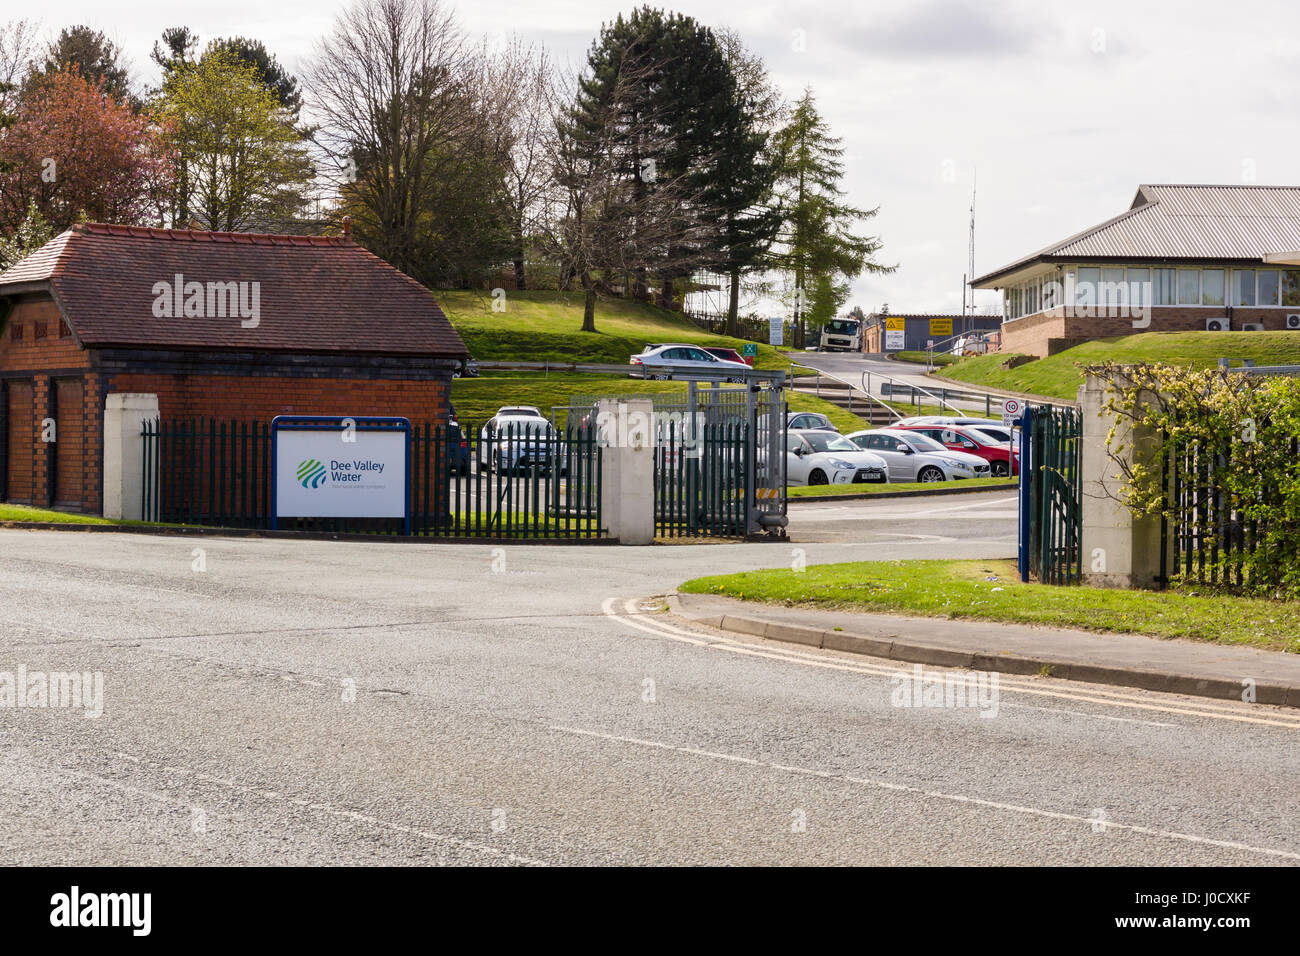 Packsaddle, Wrexham, United Kingdom. 11th Apr, 2017. The head office entrance to Dee Valley Water Plc the company - Stock Image